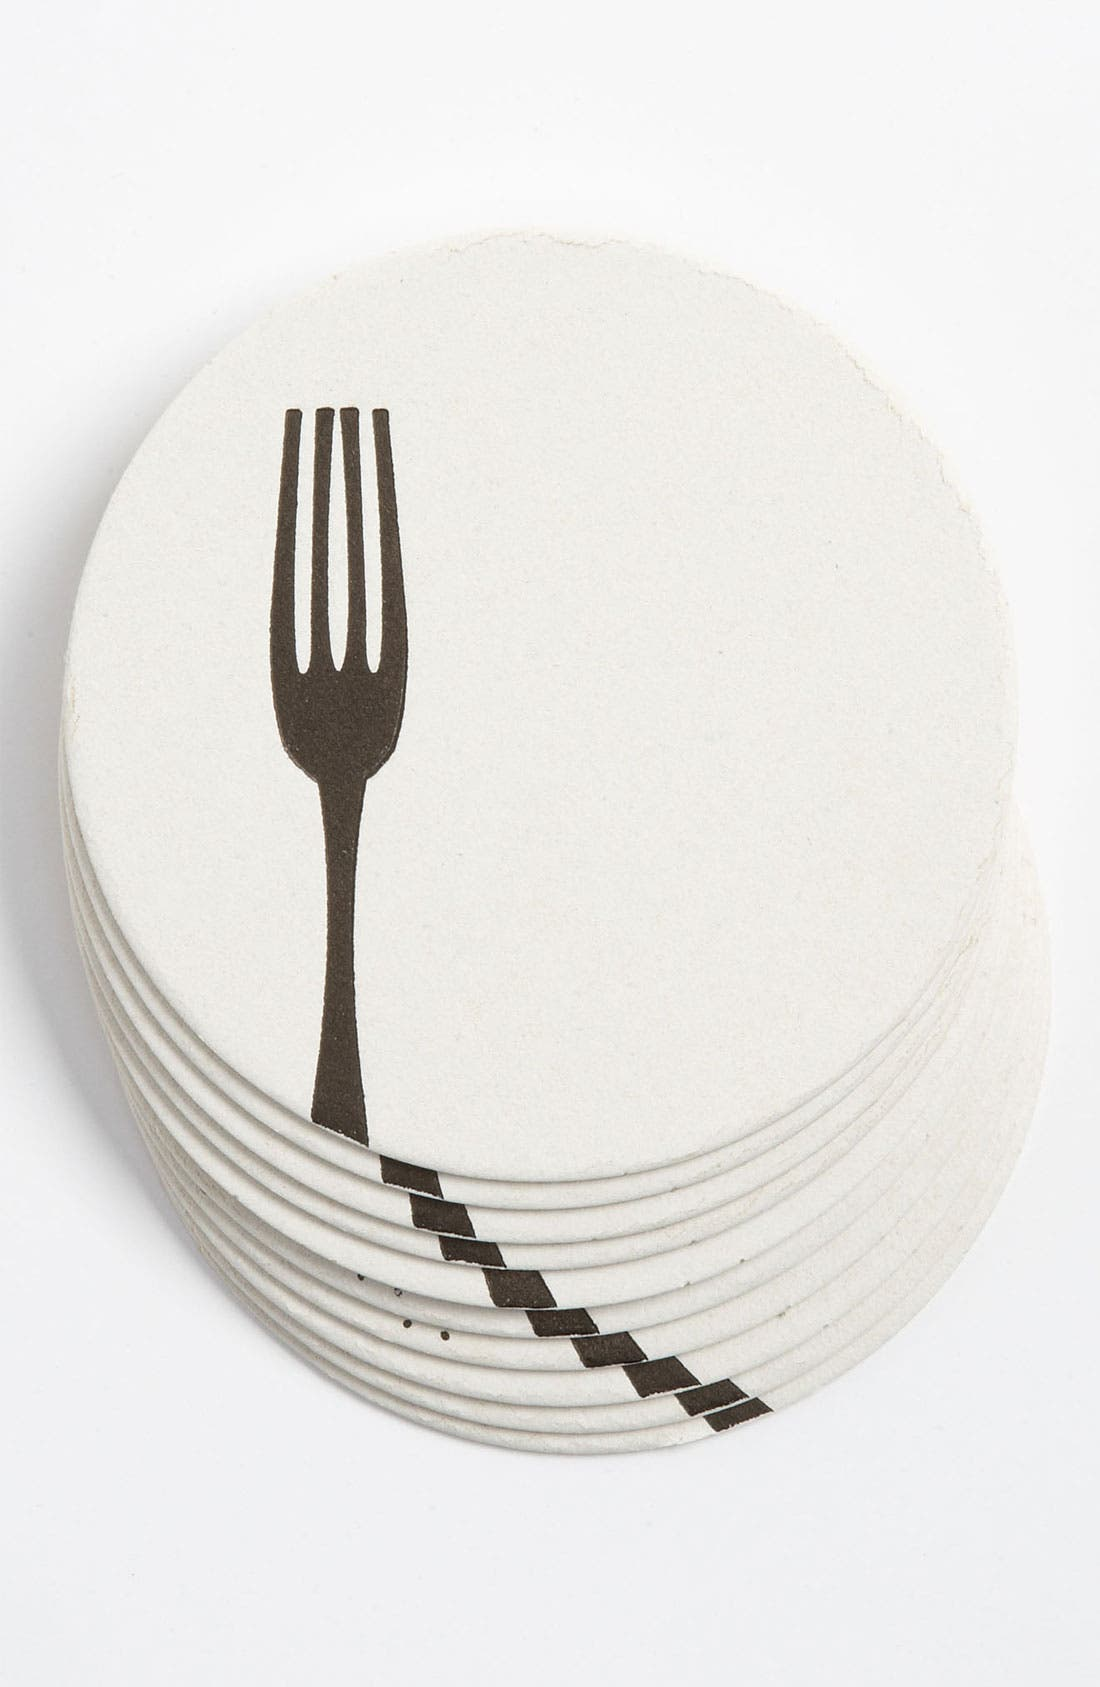 Main Image - 'Dinner Fork' Letterpress Coasters (Set of 10)